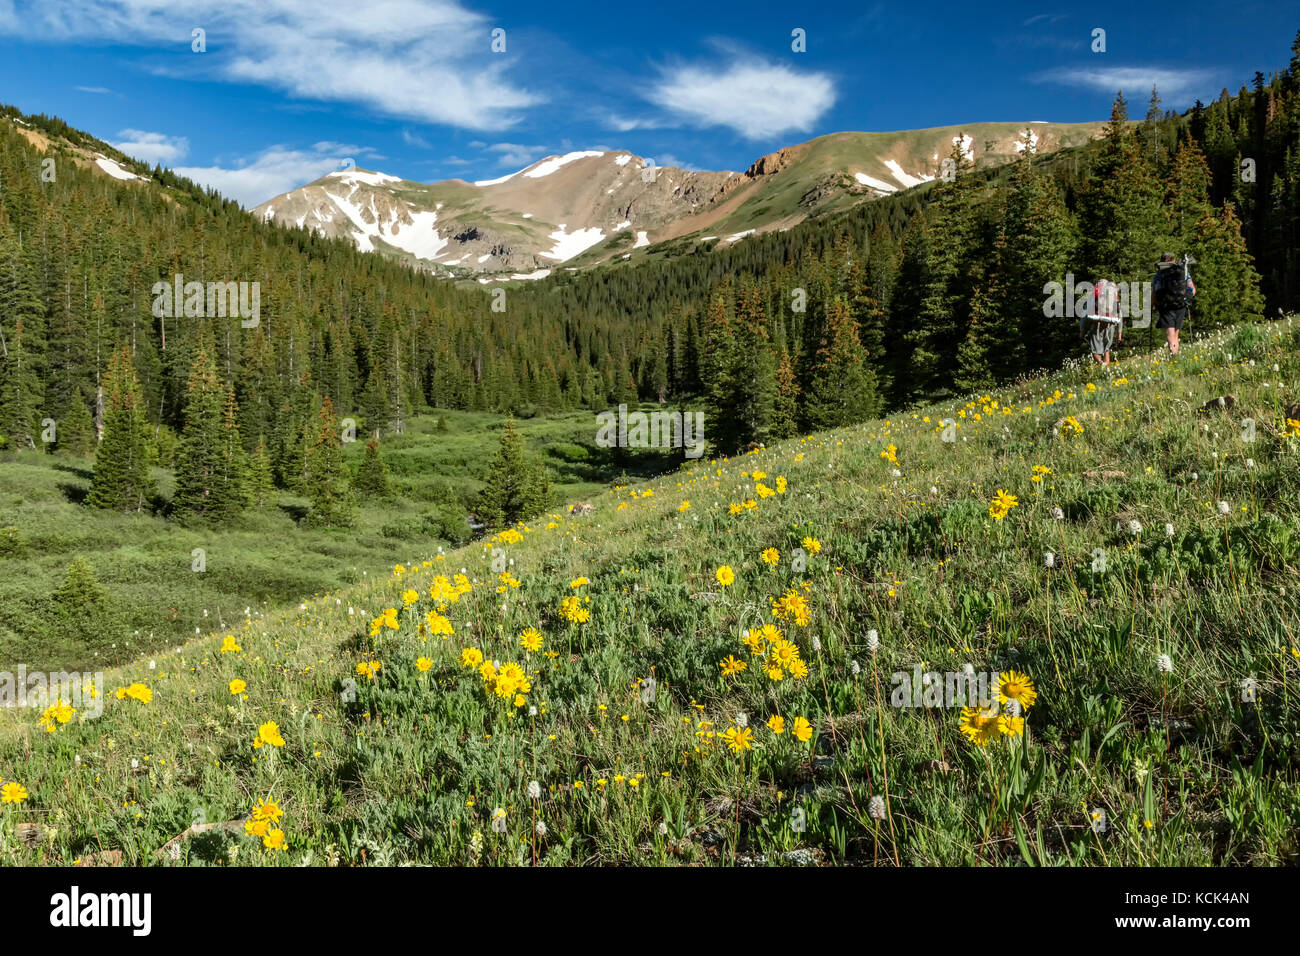 Hikers, wildflowers and mountains, Herman Gulch Trail, Arapaho National Forest, Colorado USA - Stock Image